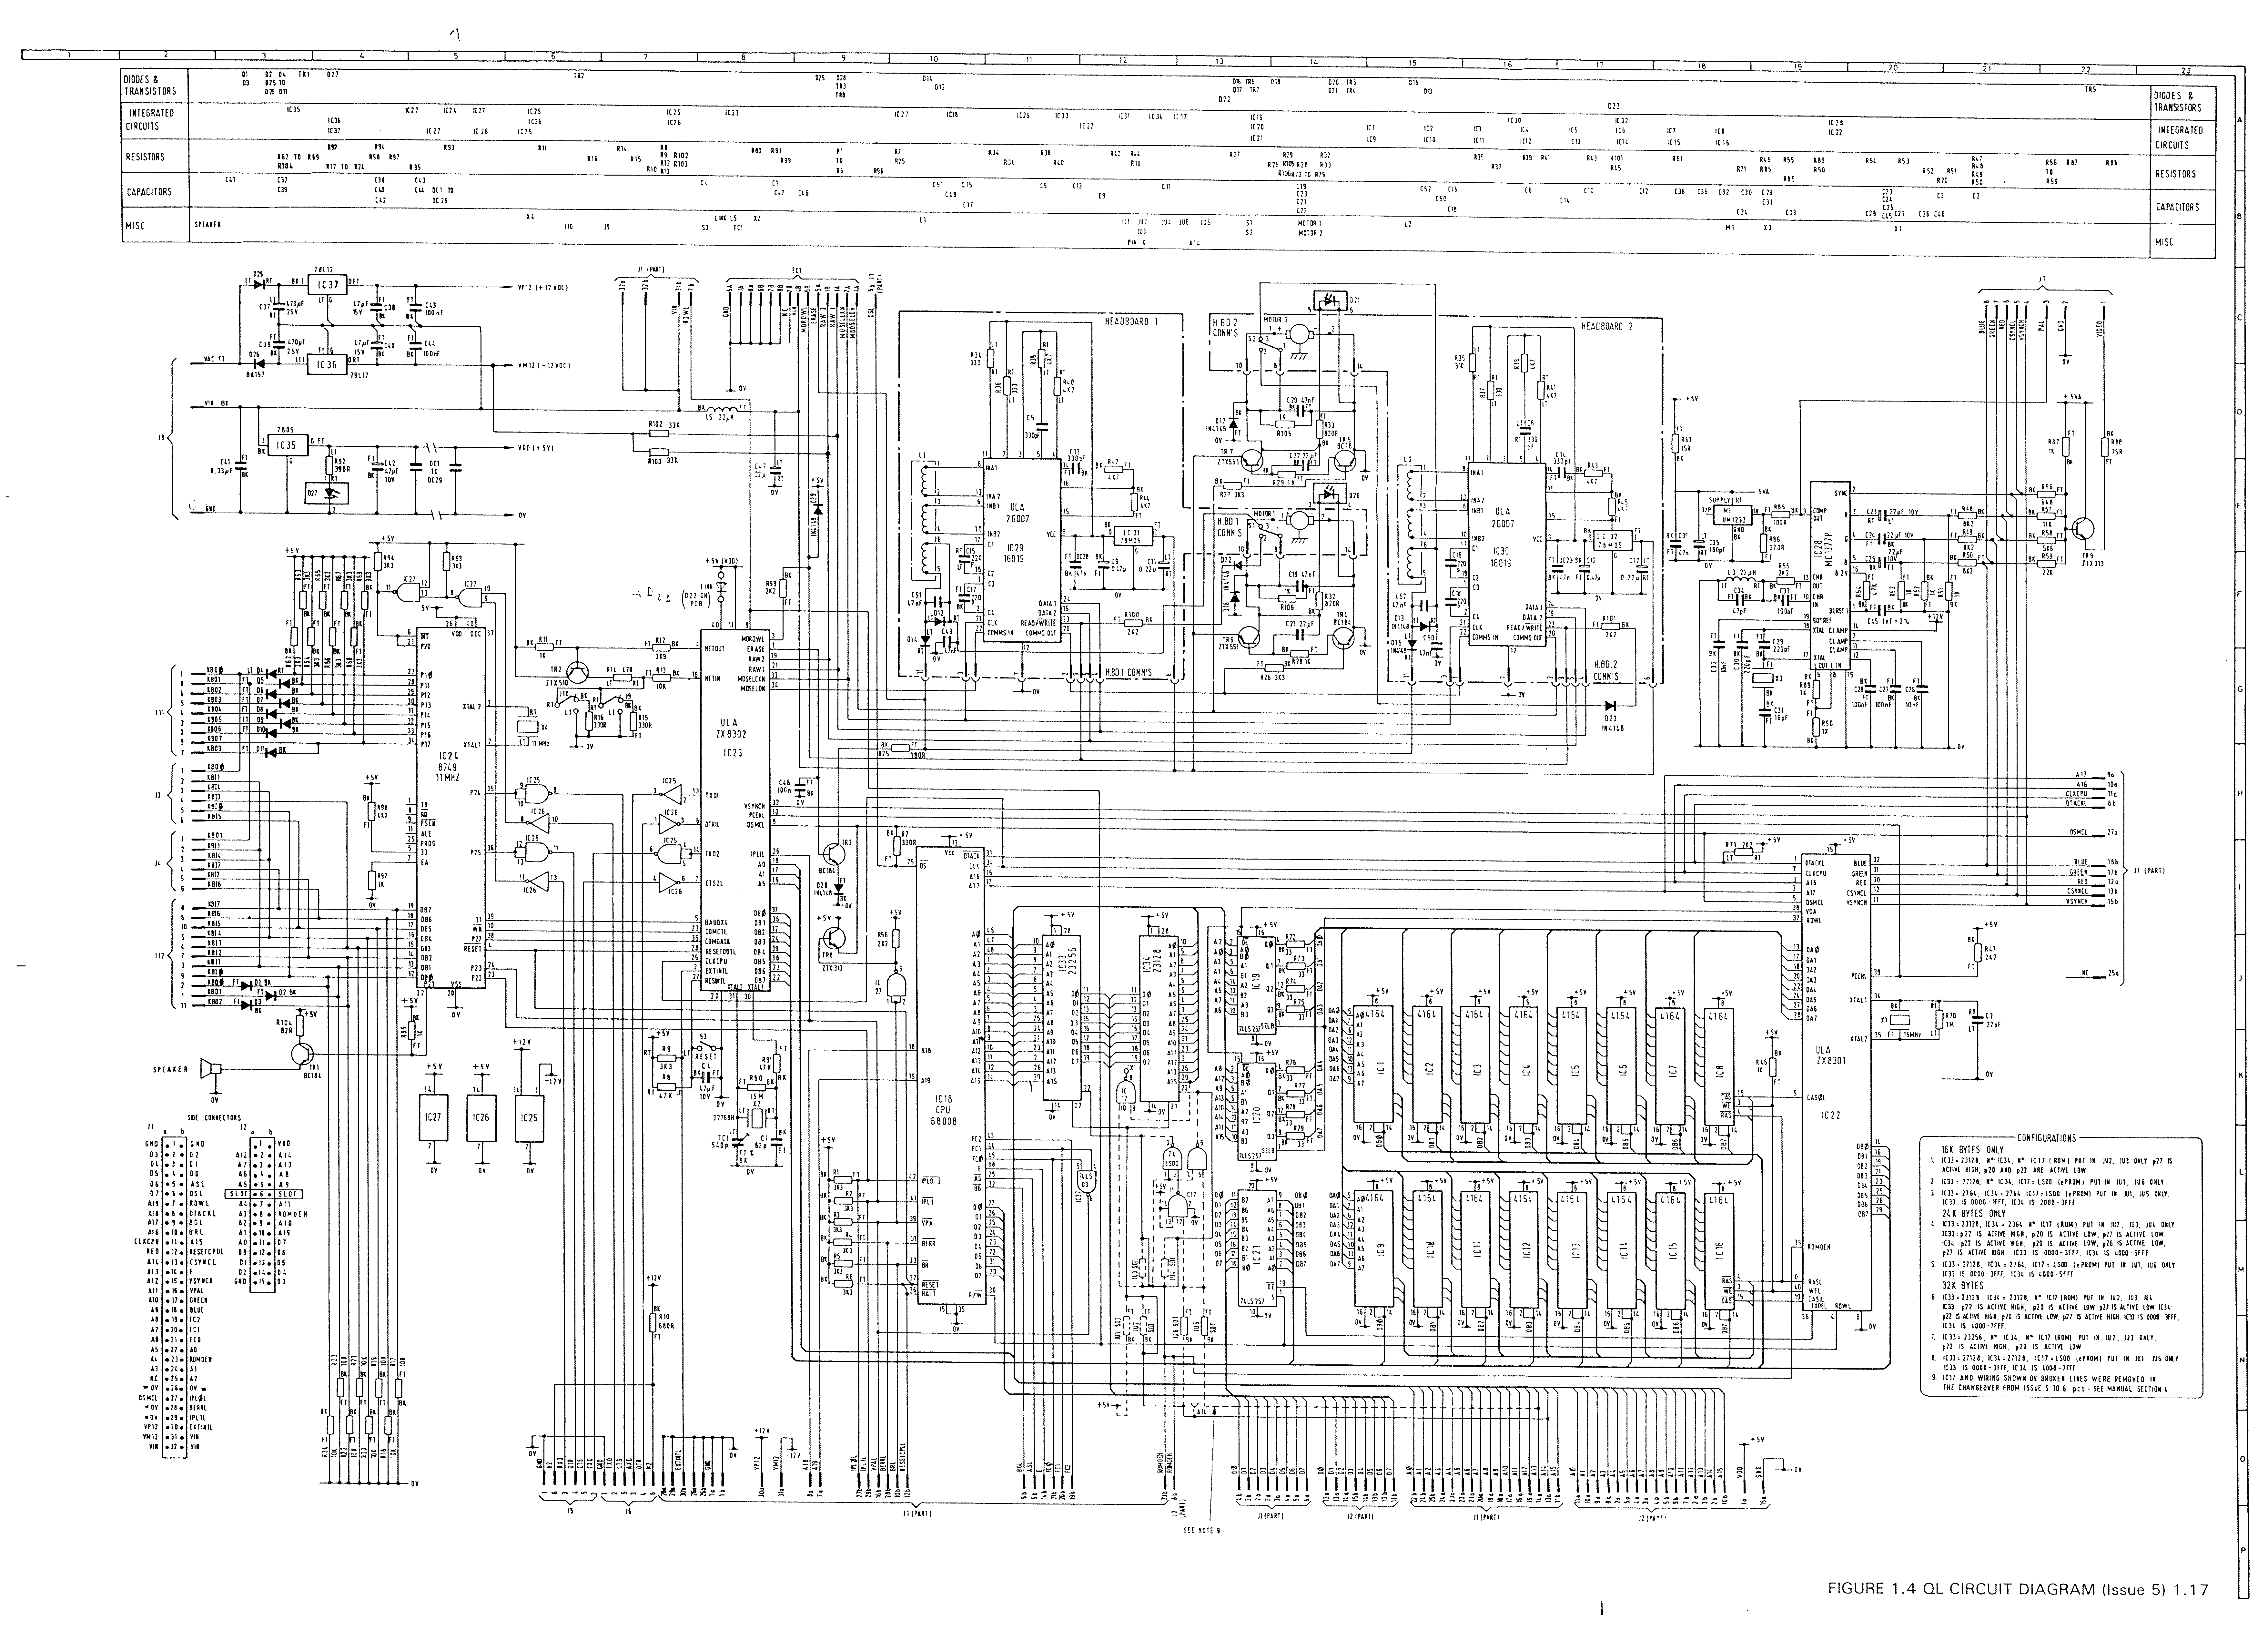 Sinclair Ql Documentation Circuit Diagram Year 6 Issue Colour 9mb Mono 05mb Block 28mb 99kb